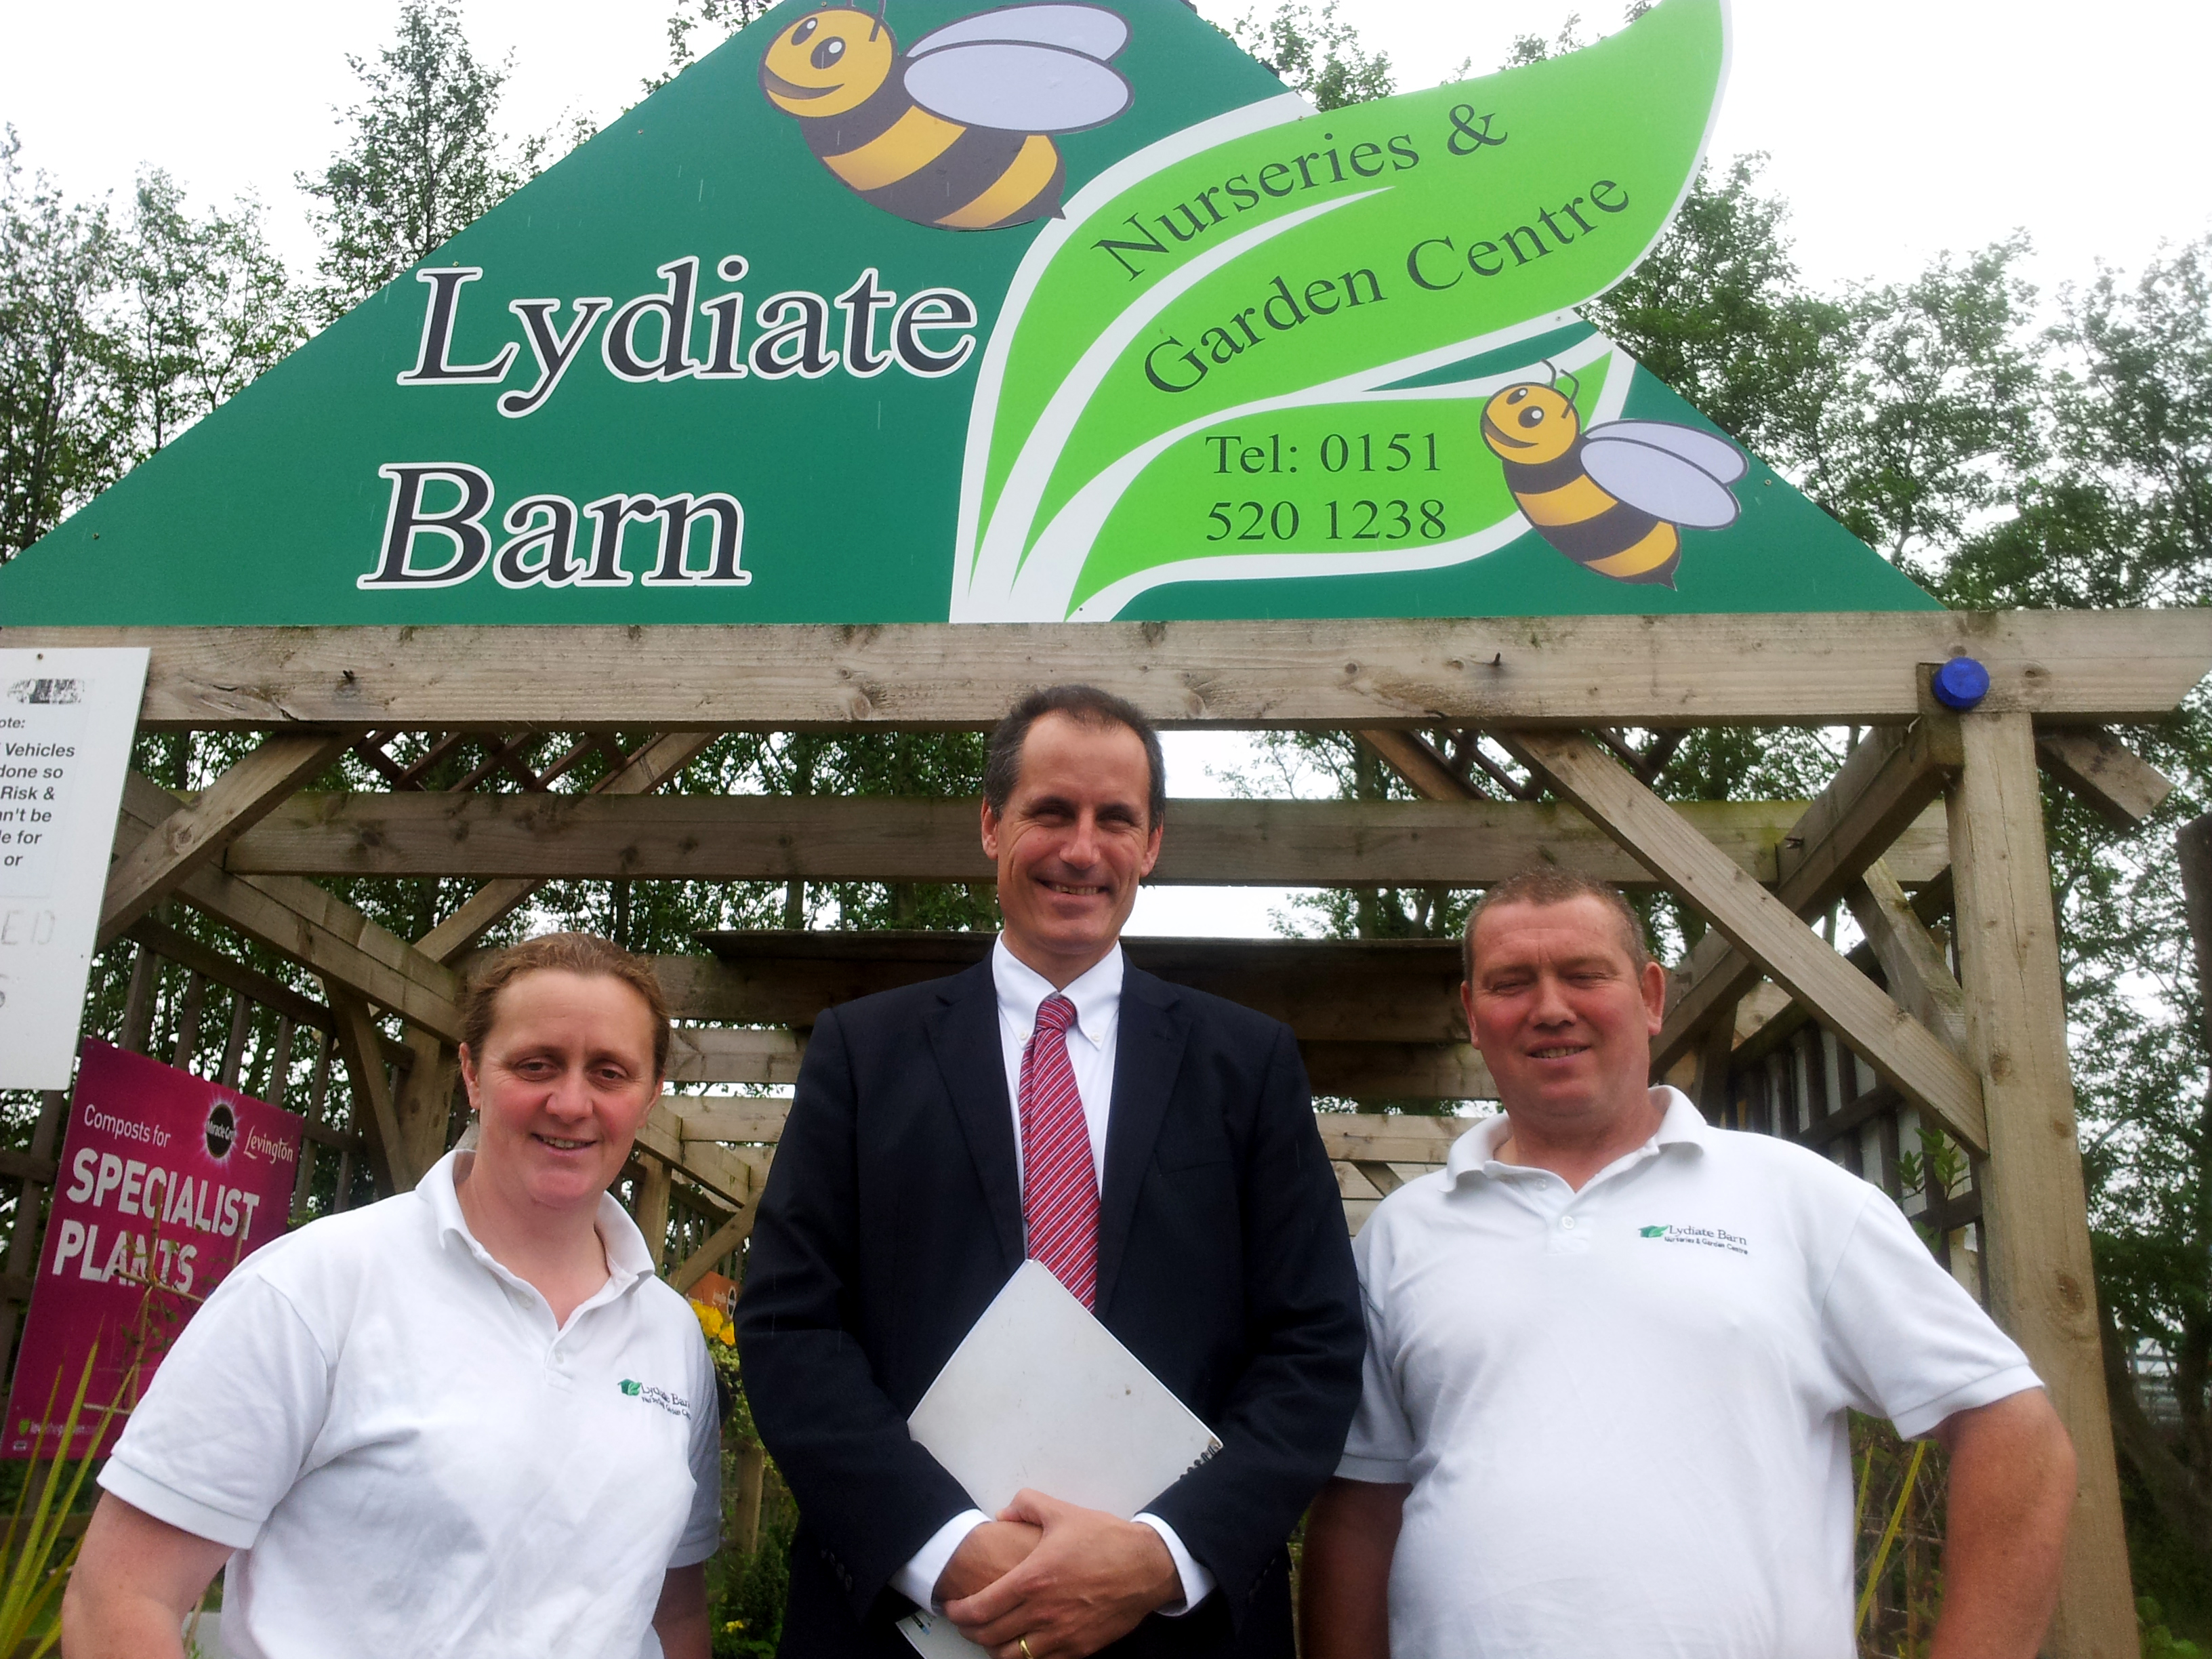 Sefton Central Labour MP Bill Esterson with Elaine and Phil Curran at Lydiate Barns Nursery and Garden Centre.